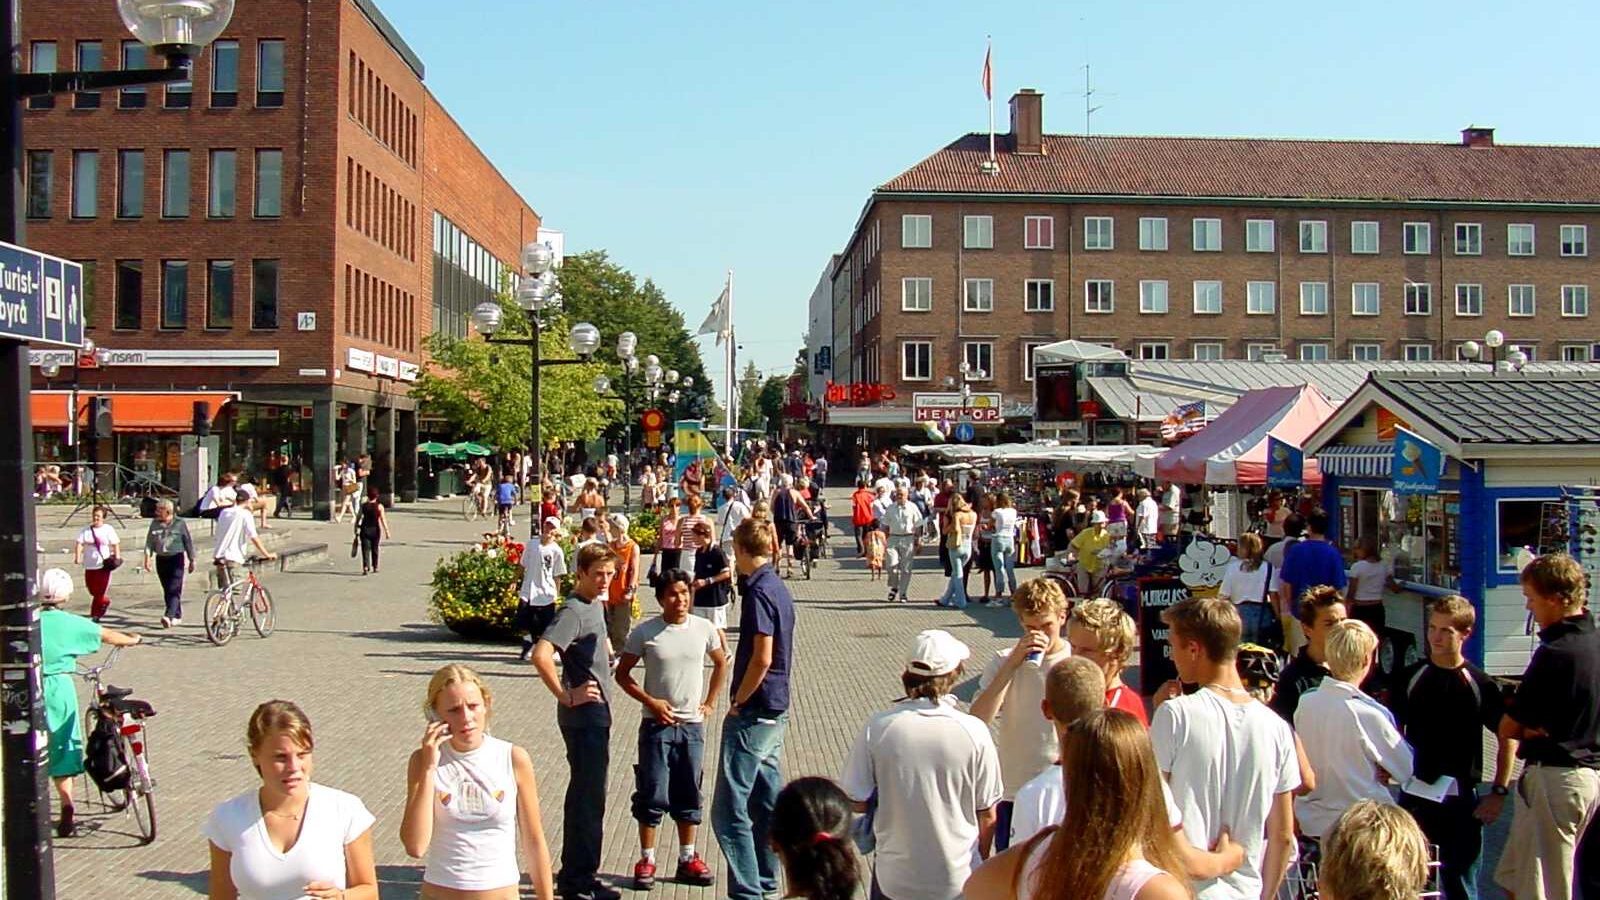 A photo of a street fair, showing people of diverse ages and bodies walking, biking, and talking in groups.